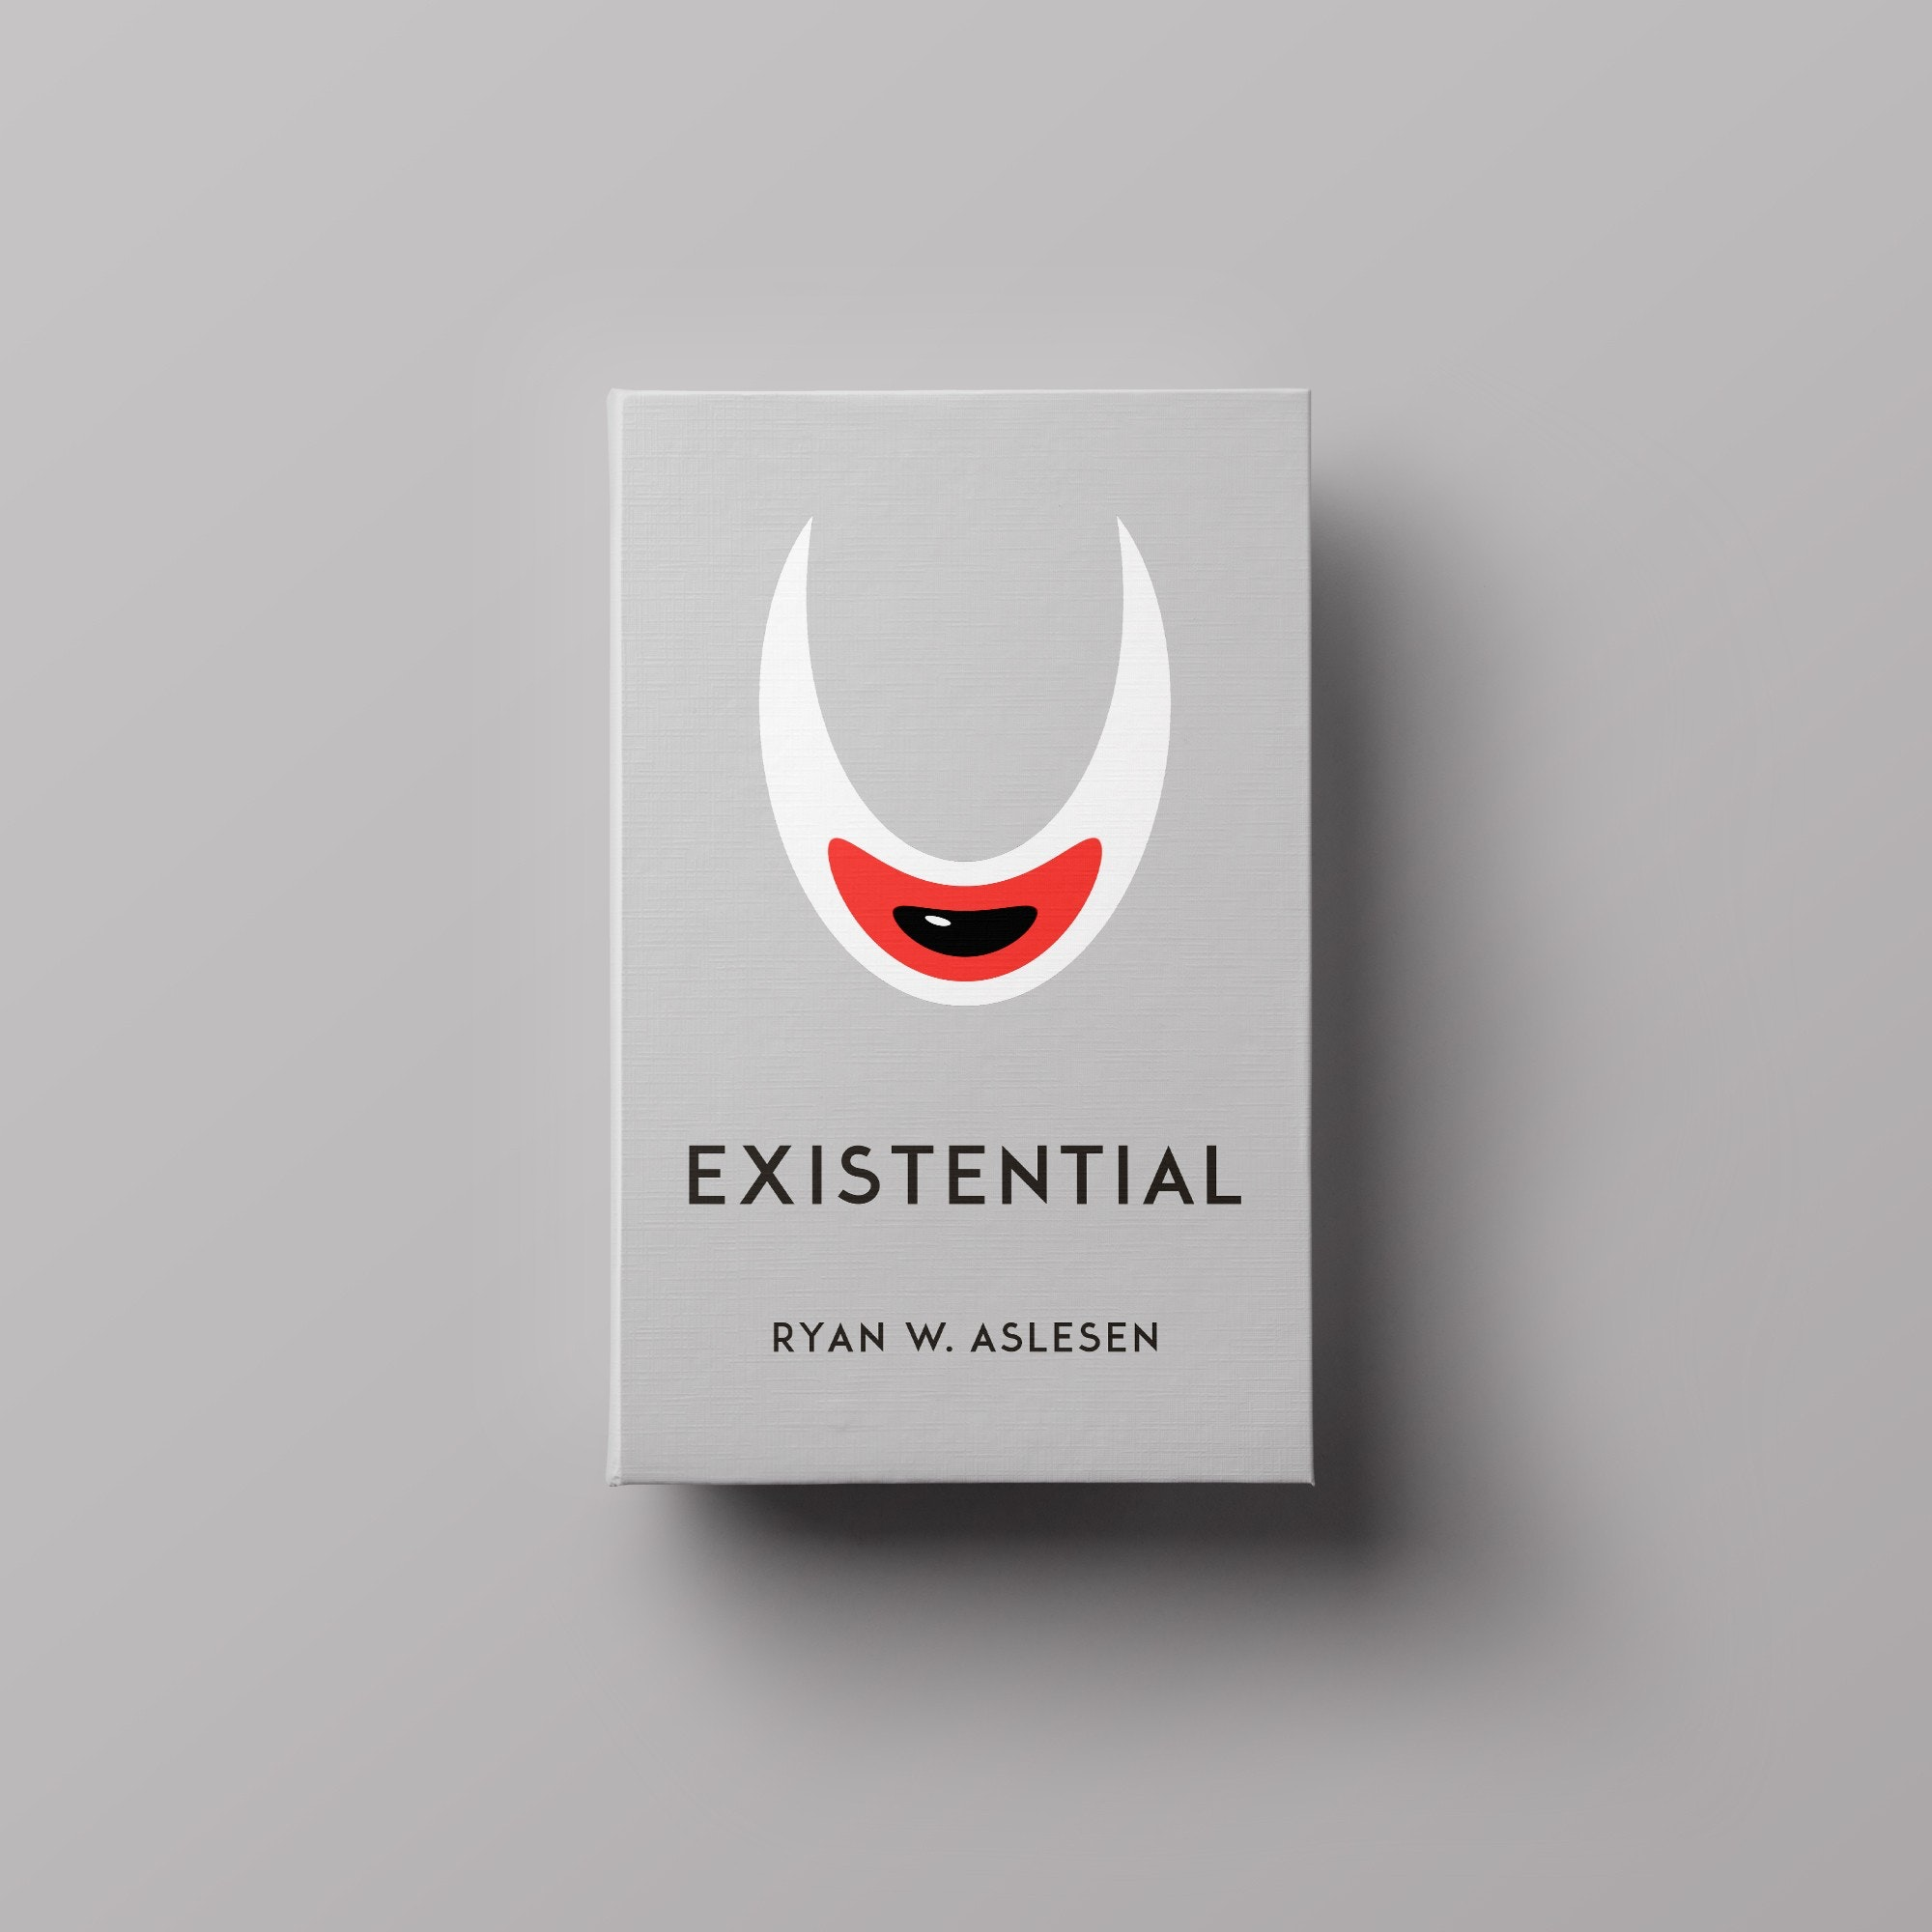 Existential book cover